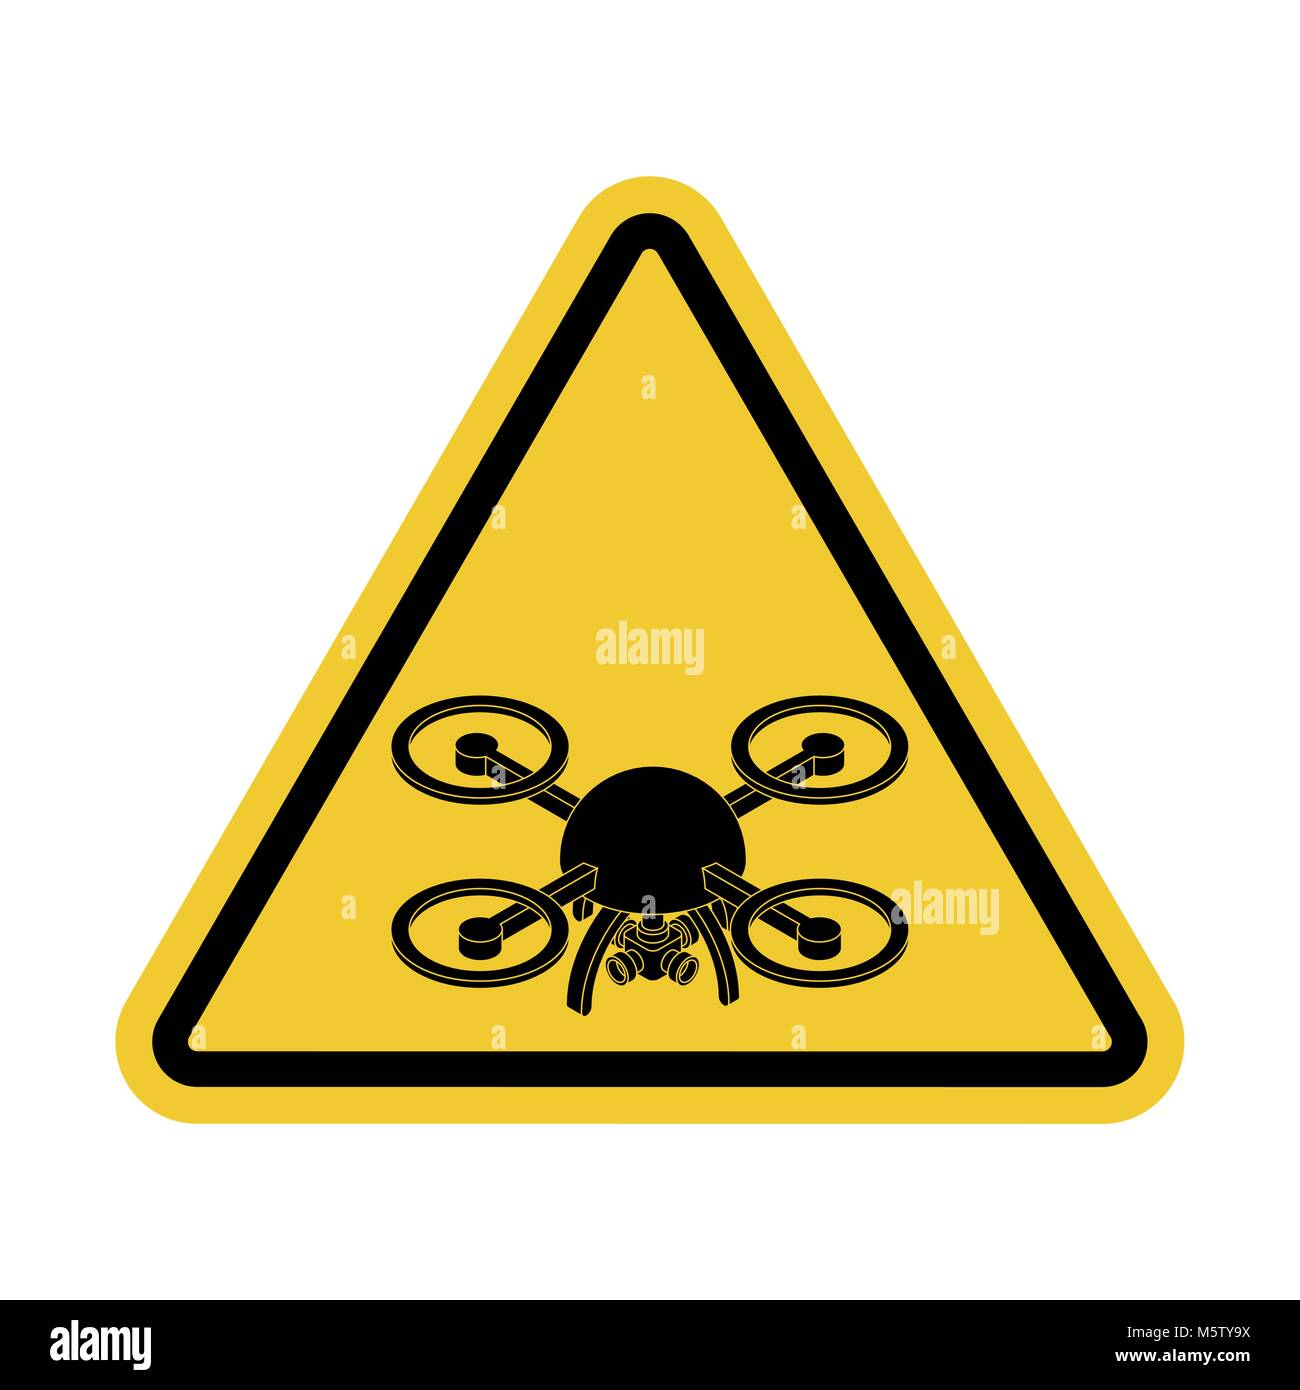 Attention quadrocopter. Danger of aerial photography. Yellow road sign - Stock Vector